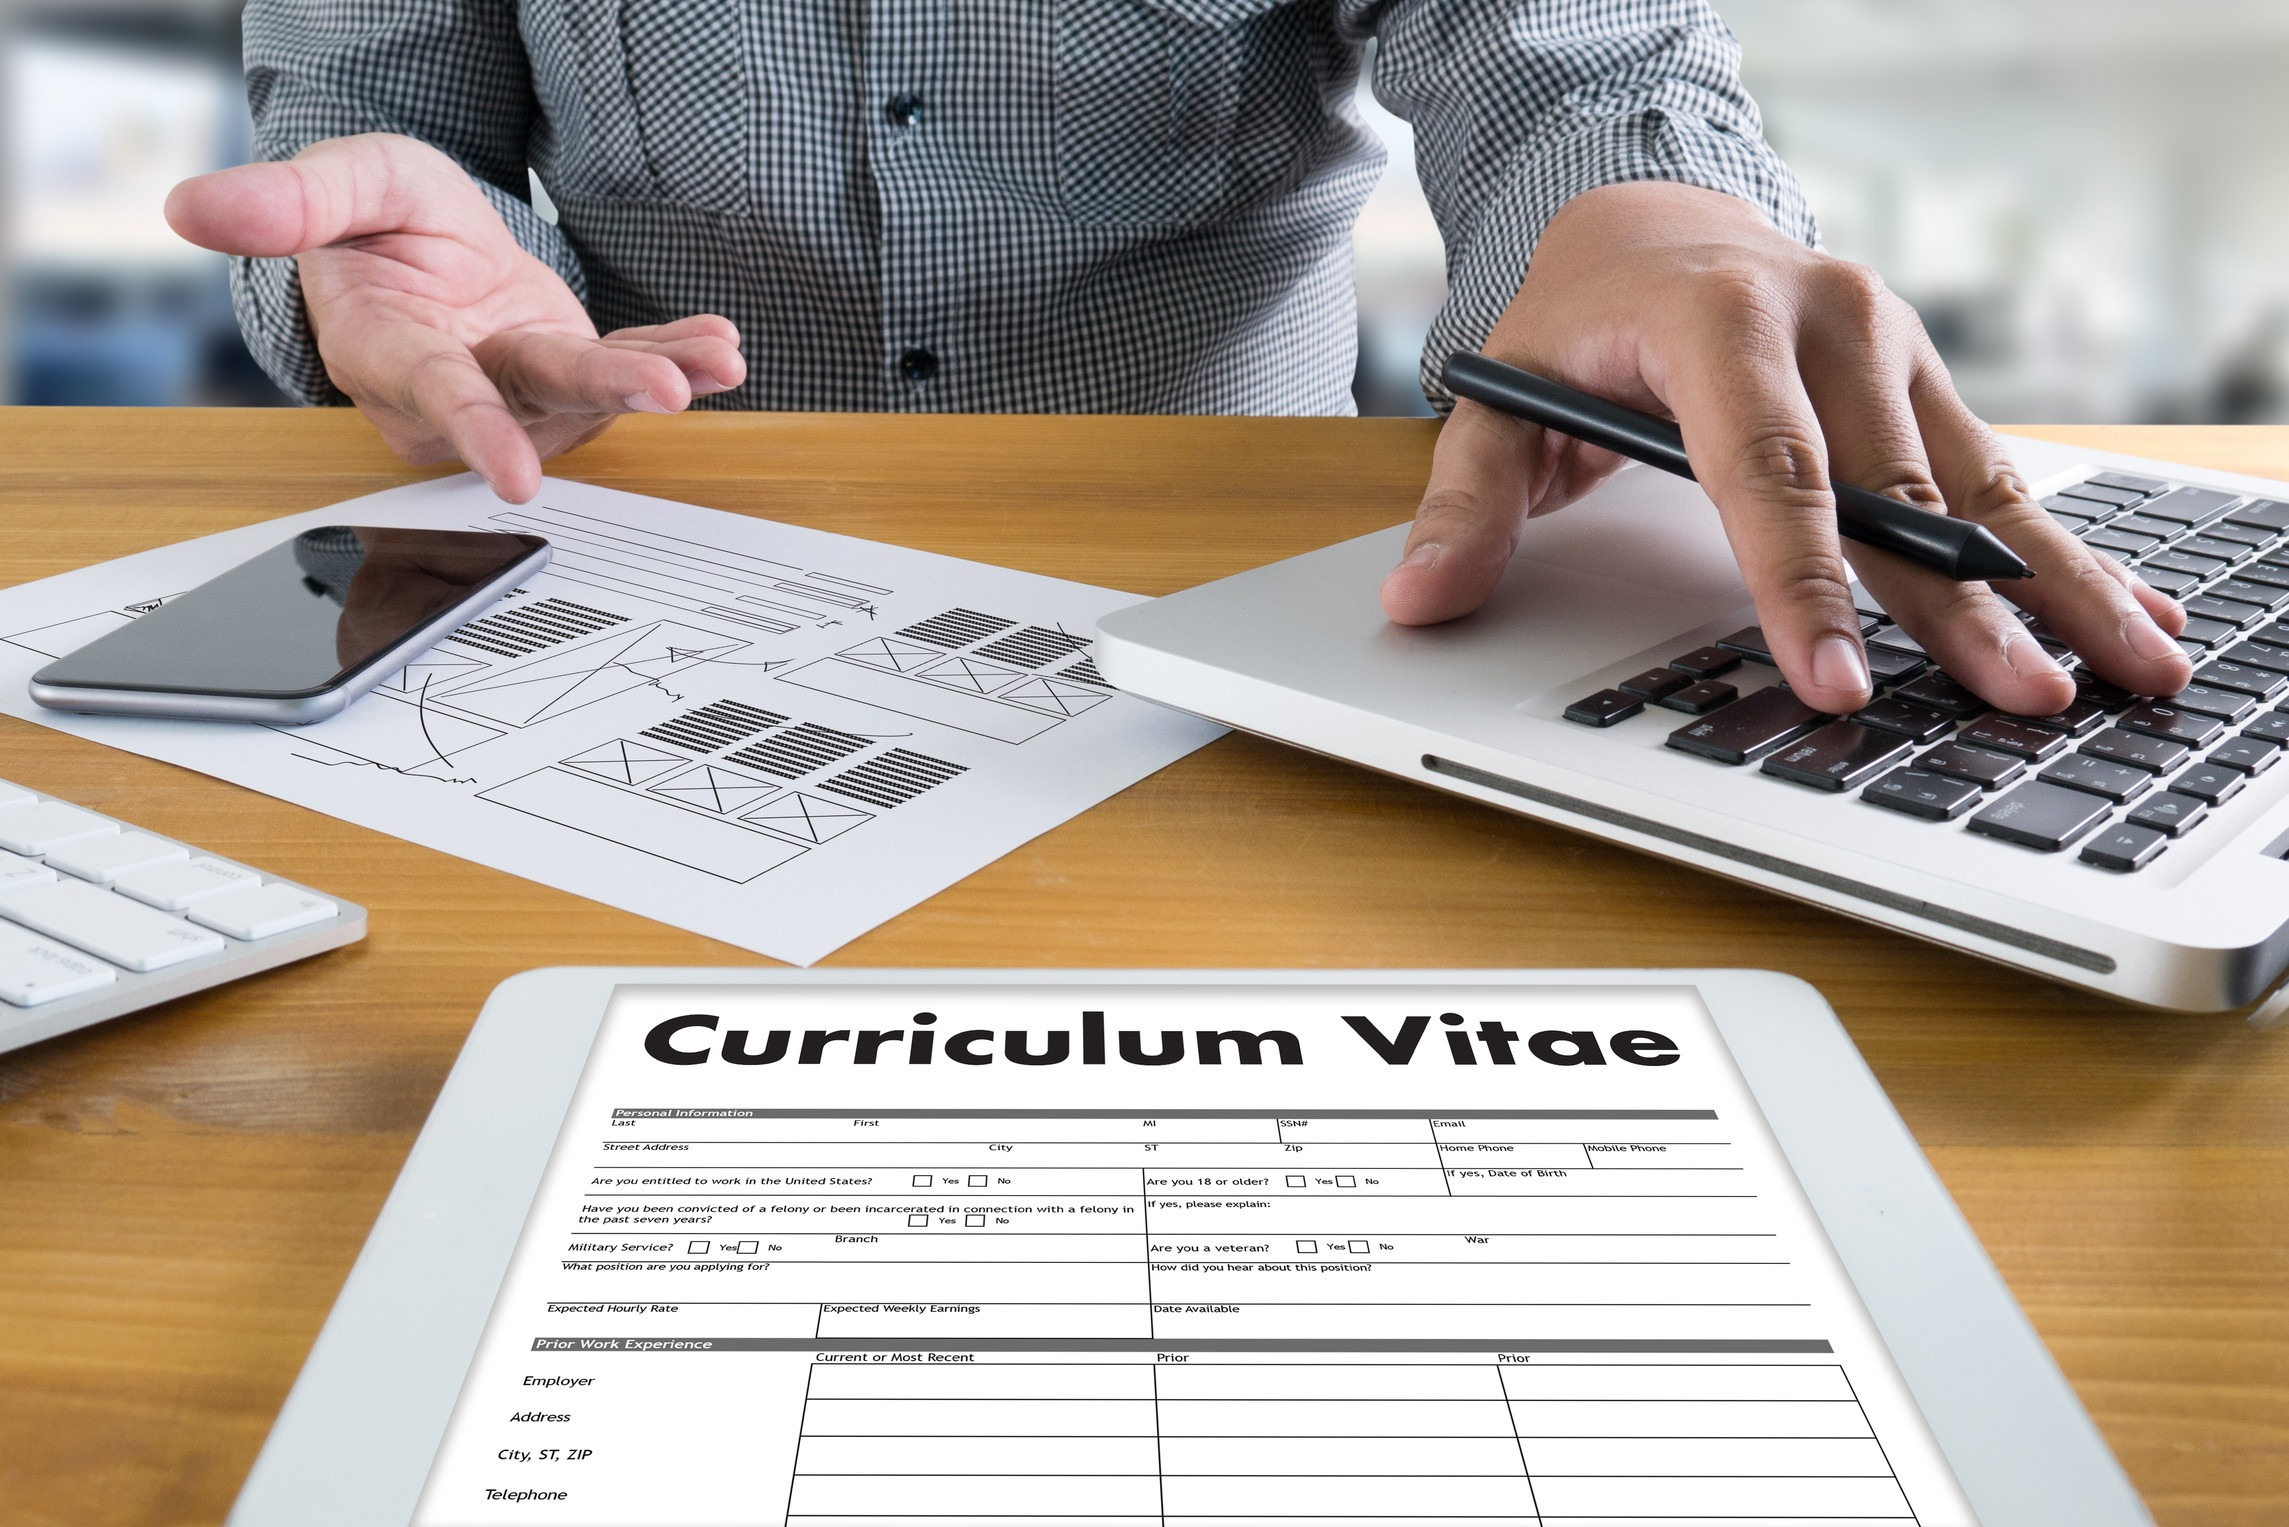 Picture of a man with a CV and a pen and papers